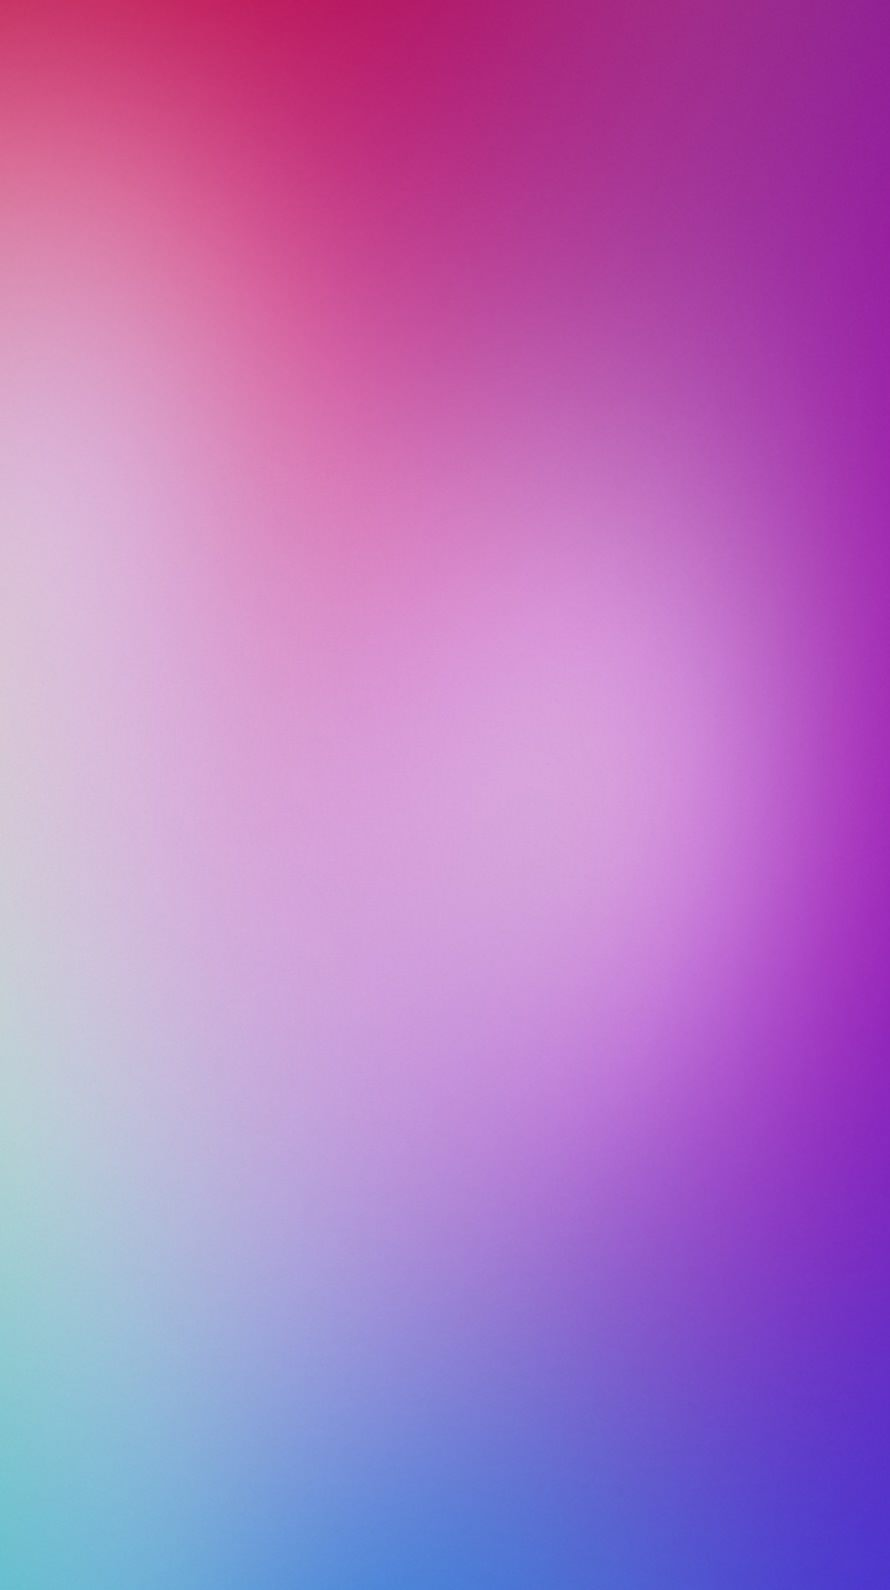 Wallpaper iphone violet - Iphone 6s Iphone 6 Wallpaper